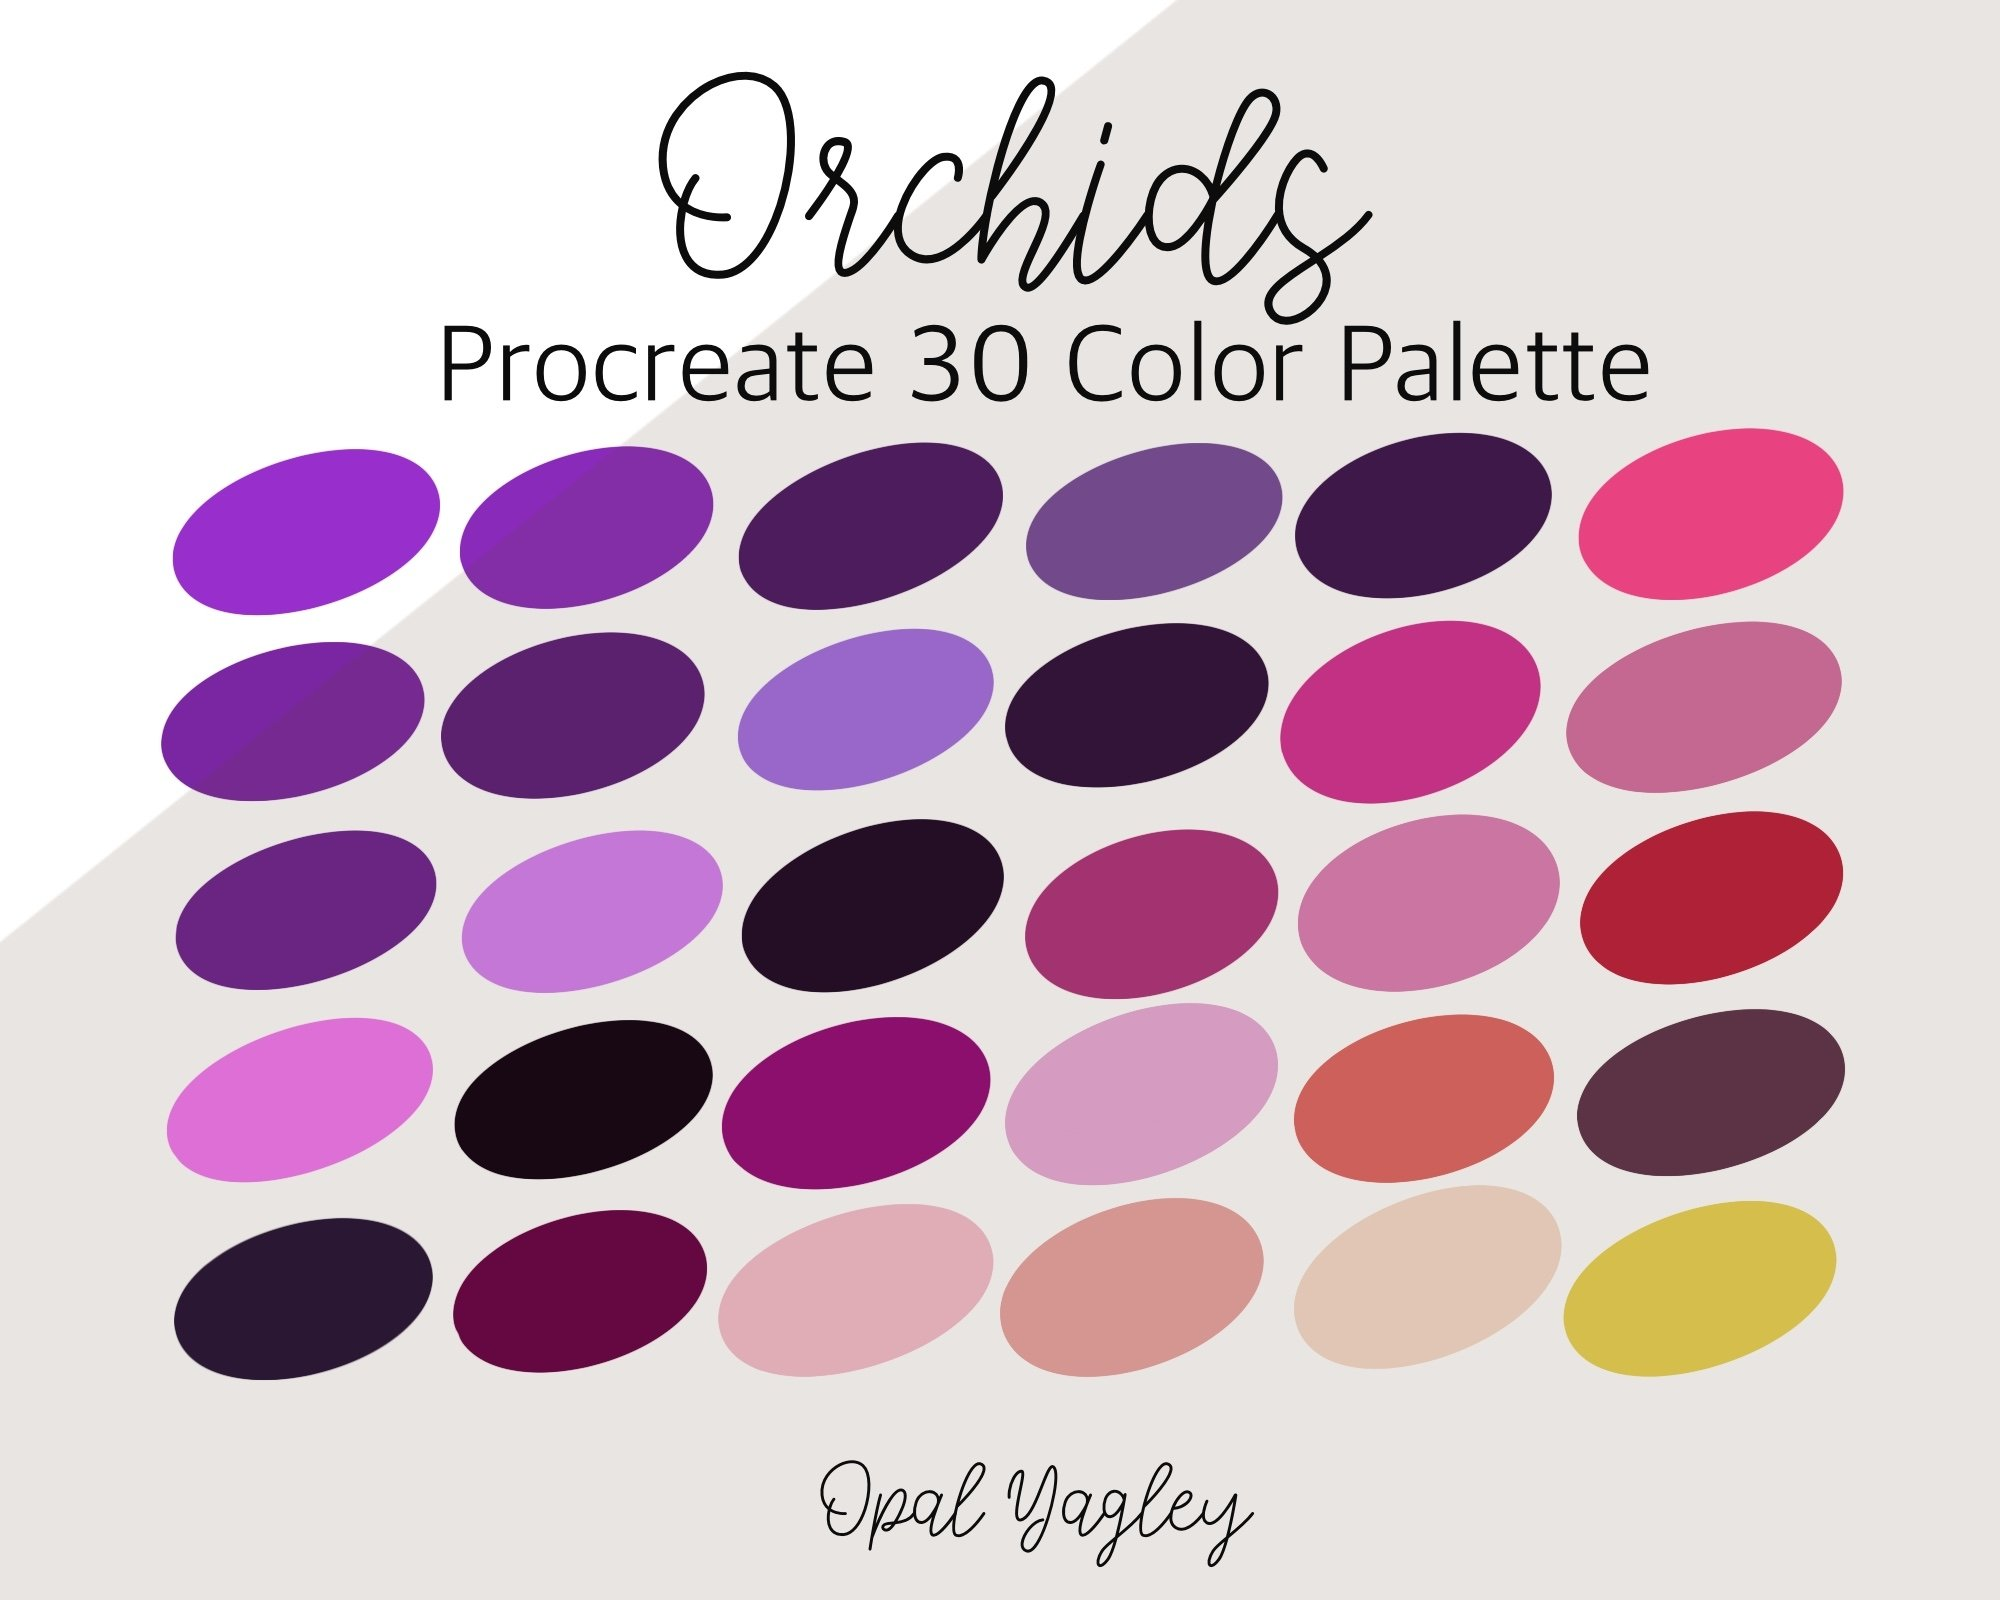 Orchids Procreate Color Palette  Spring Flower Colors   Procreate  Floral Palette  Watercolor Flowers  iPad Art  Digital Swatches